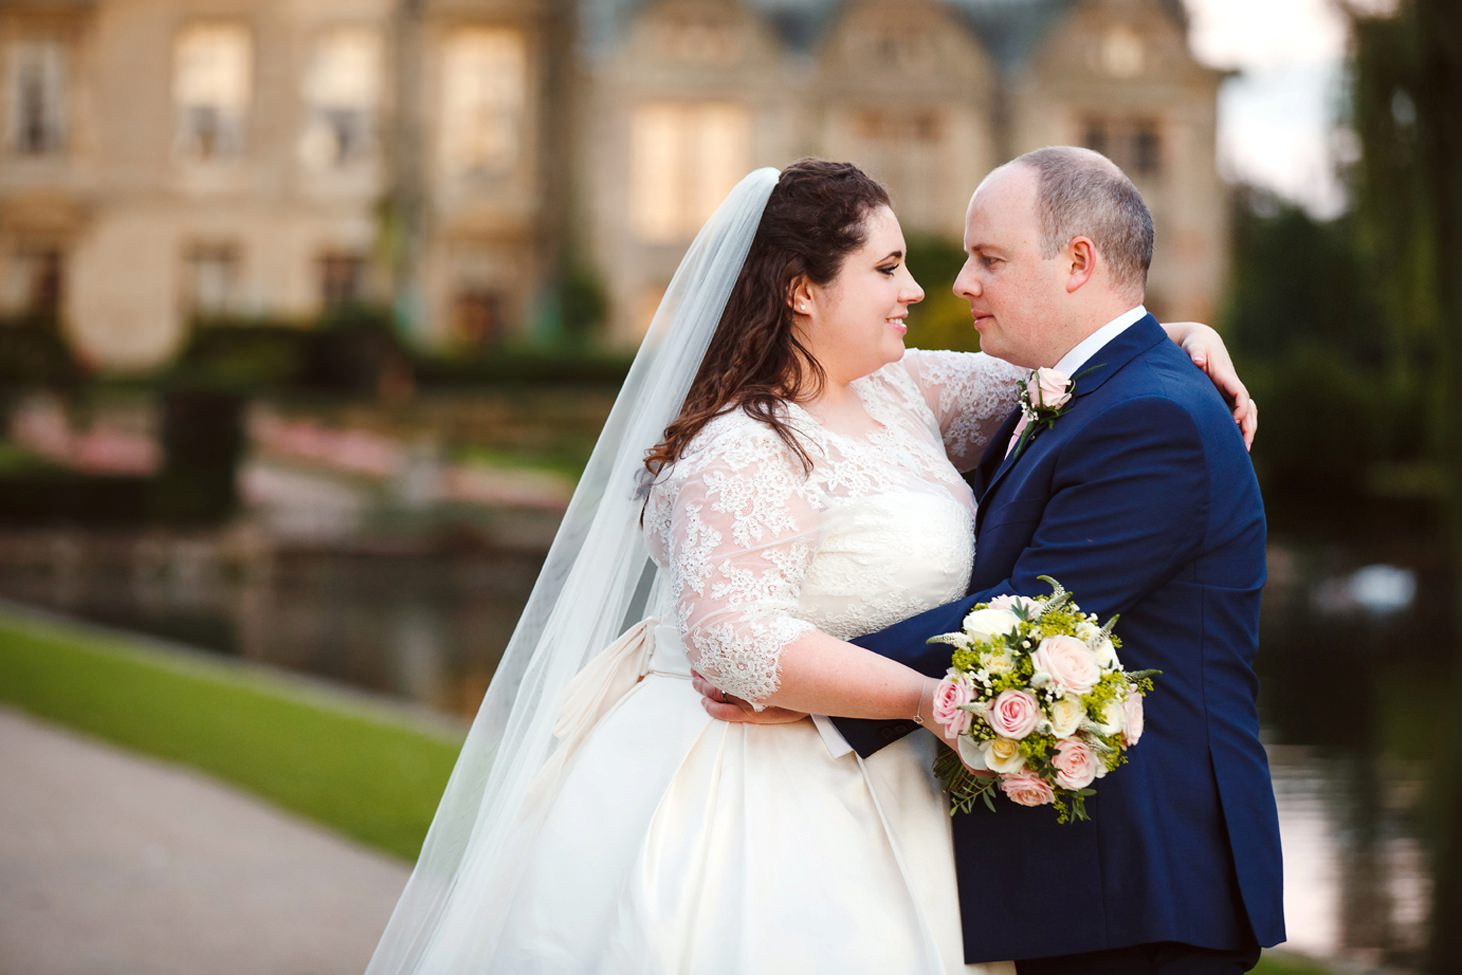 Coombe Abbey wedding photography Sarah Ann Wright 097